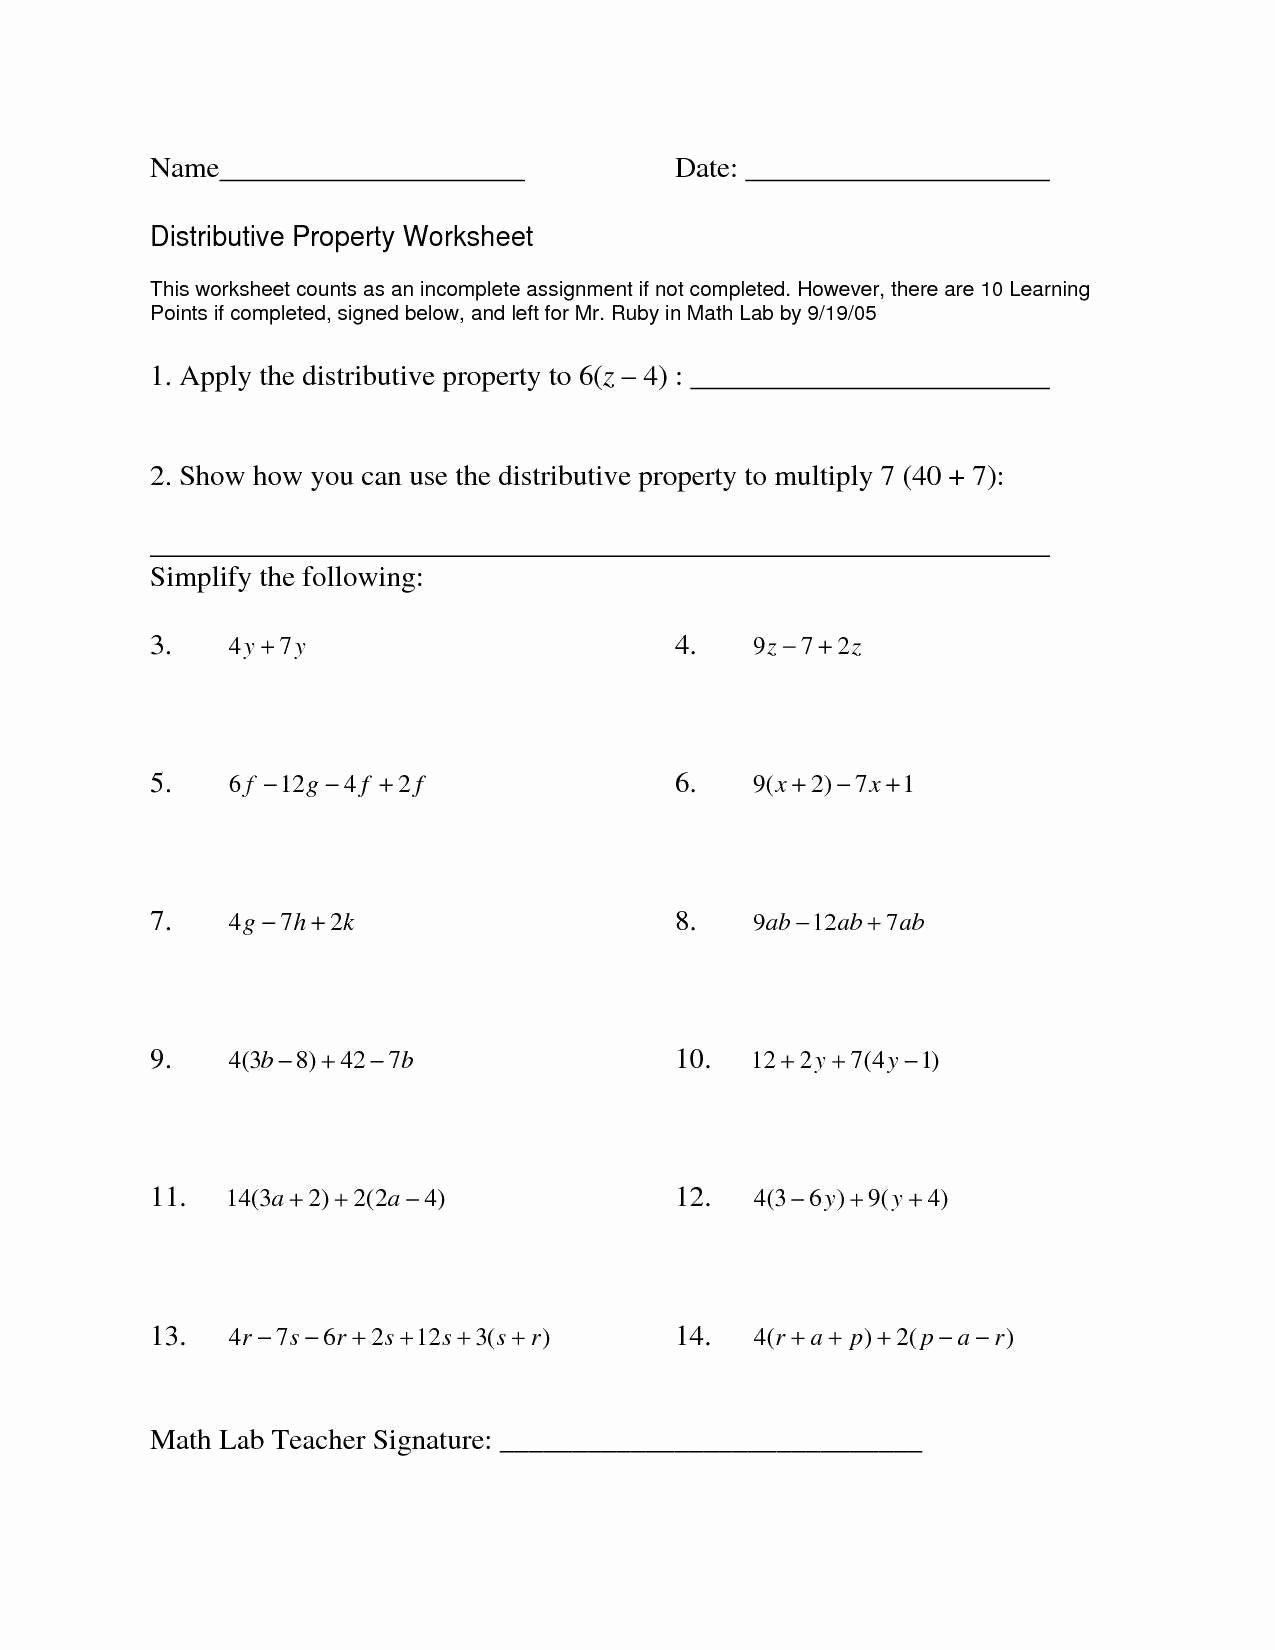 Factoring Distributive Property Worksheet Awesome Distributive Property Worksheet Answers Worksheet Idea